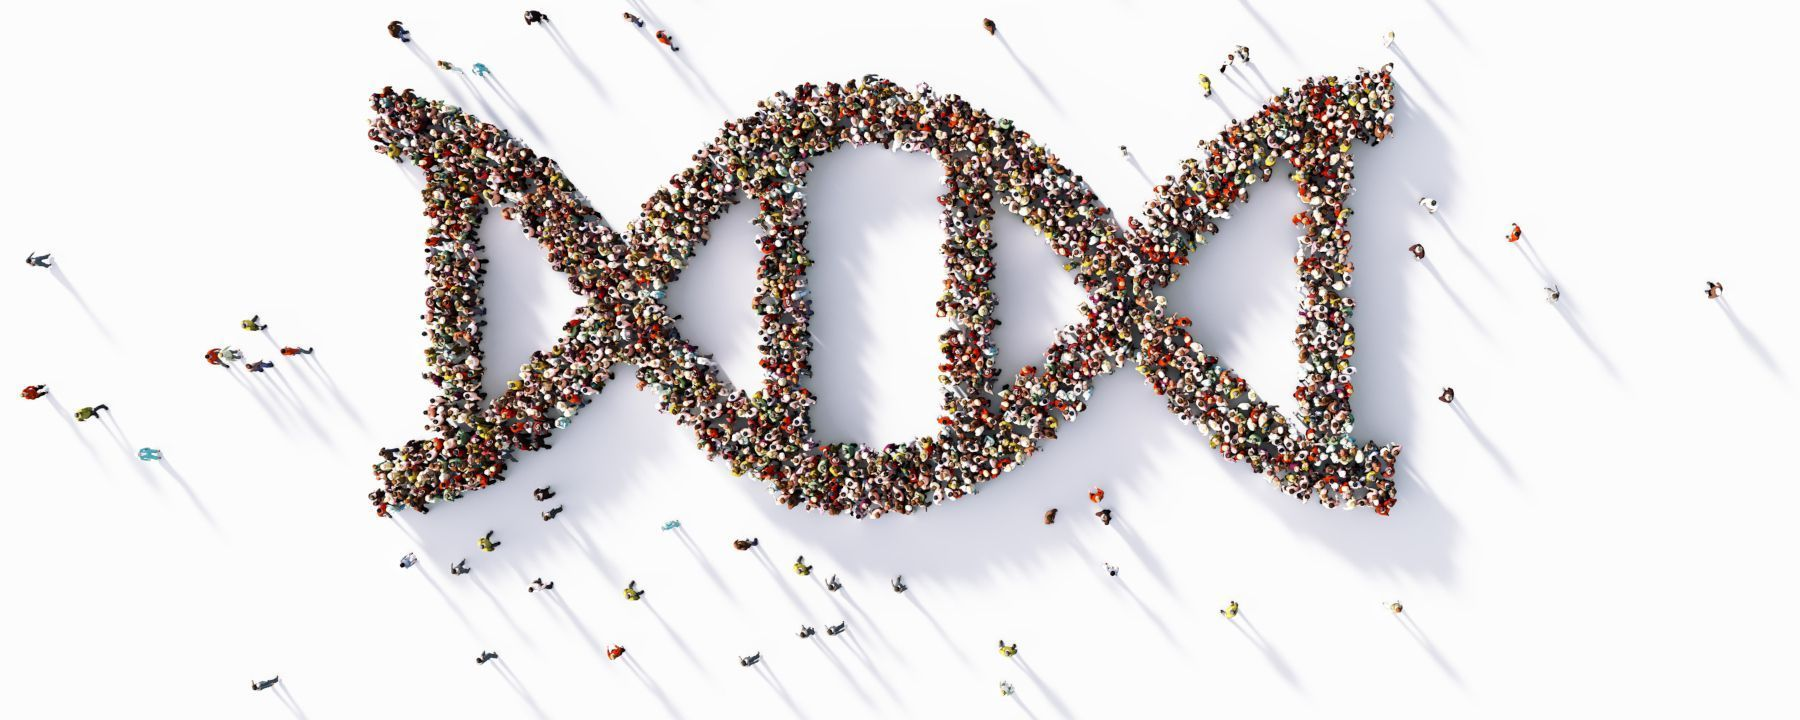 Sequences of African Genomes Highlights Long-Overlooked Diversity